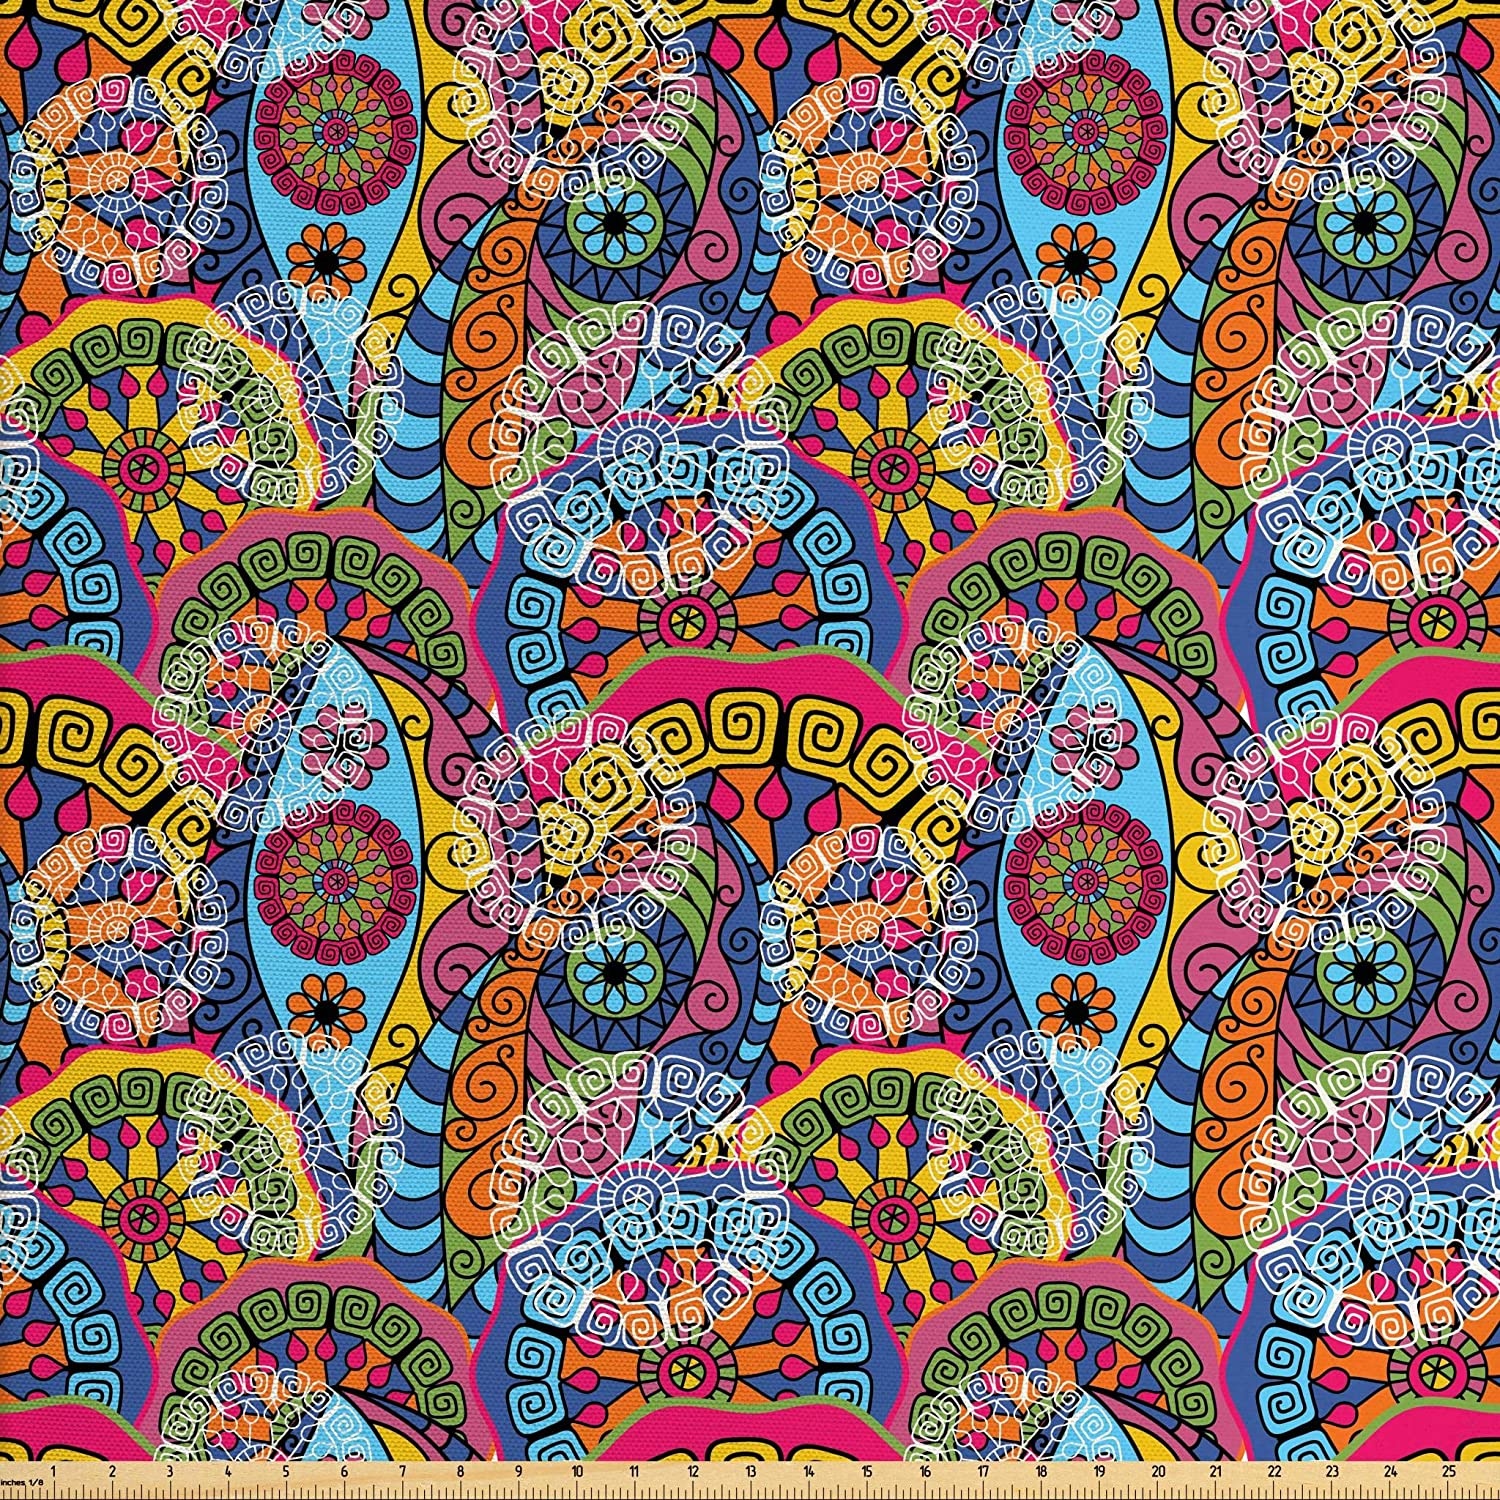 Ambesonne Mandala Fabric by The Yard, Colorful Abstract Sixties Inspired Pattern Flower Design with Stripes Lines, Decorative Fabric for Upholstery and Home Accents, 3 Yards, Pale Blue